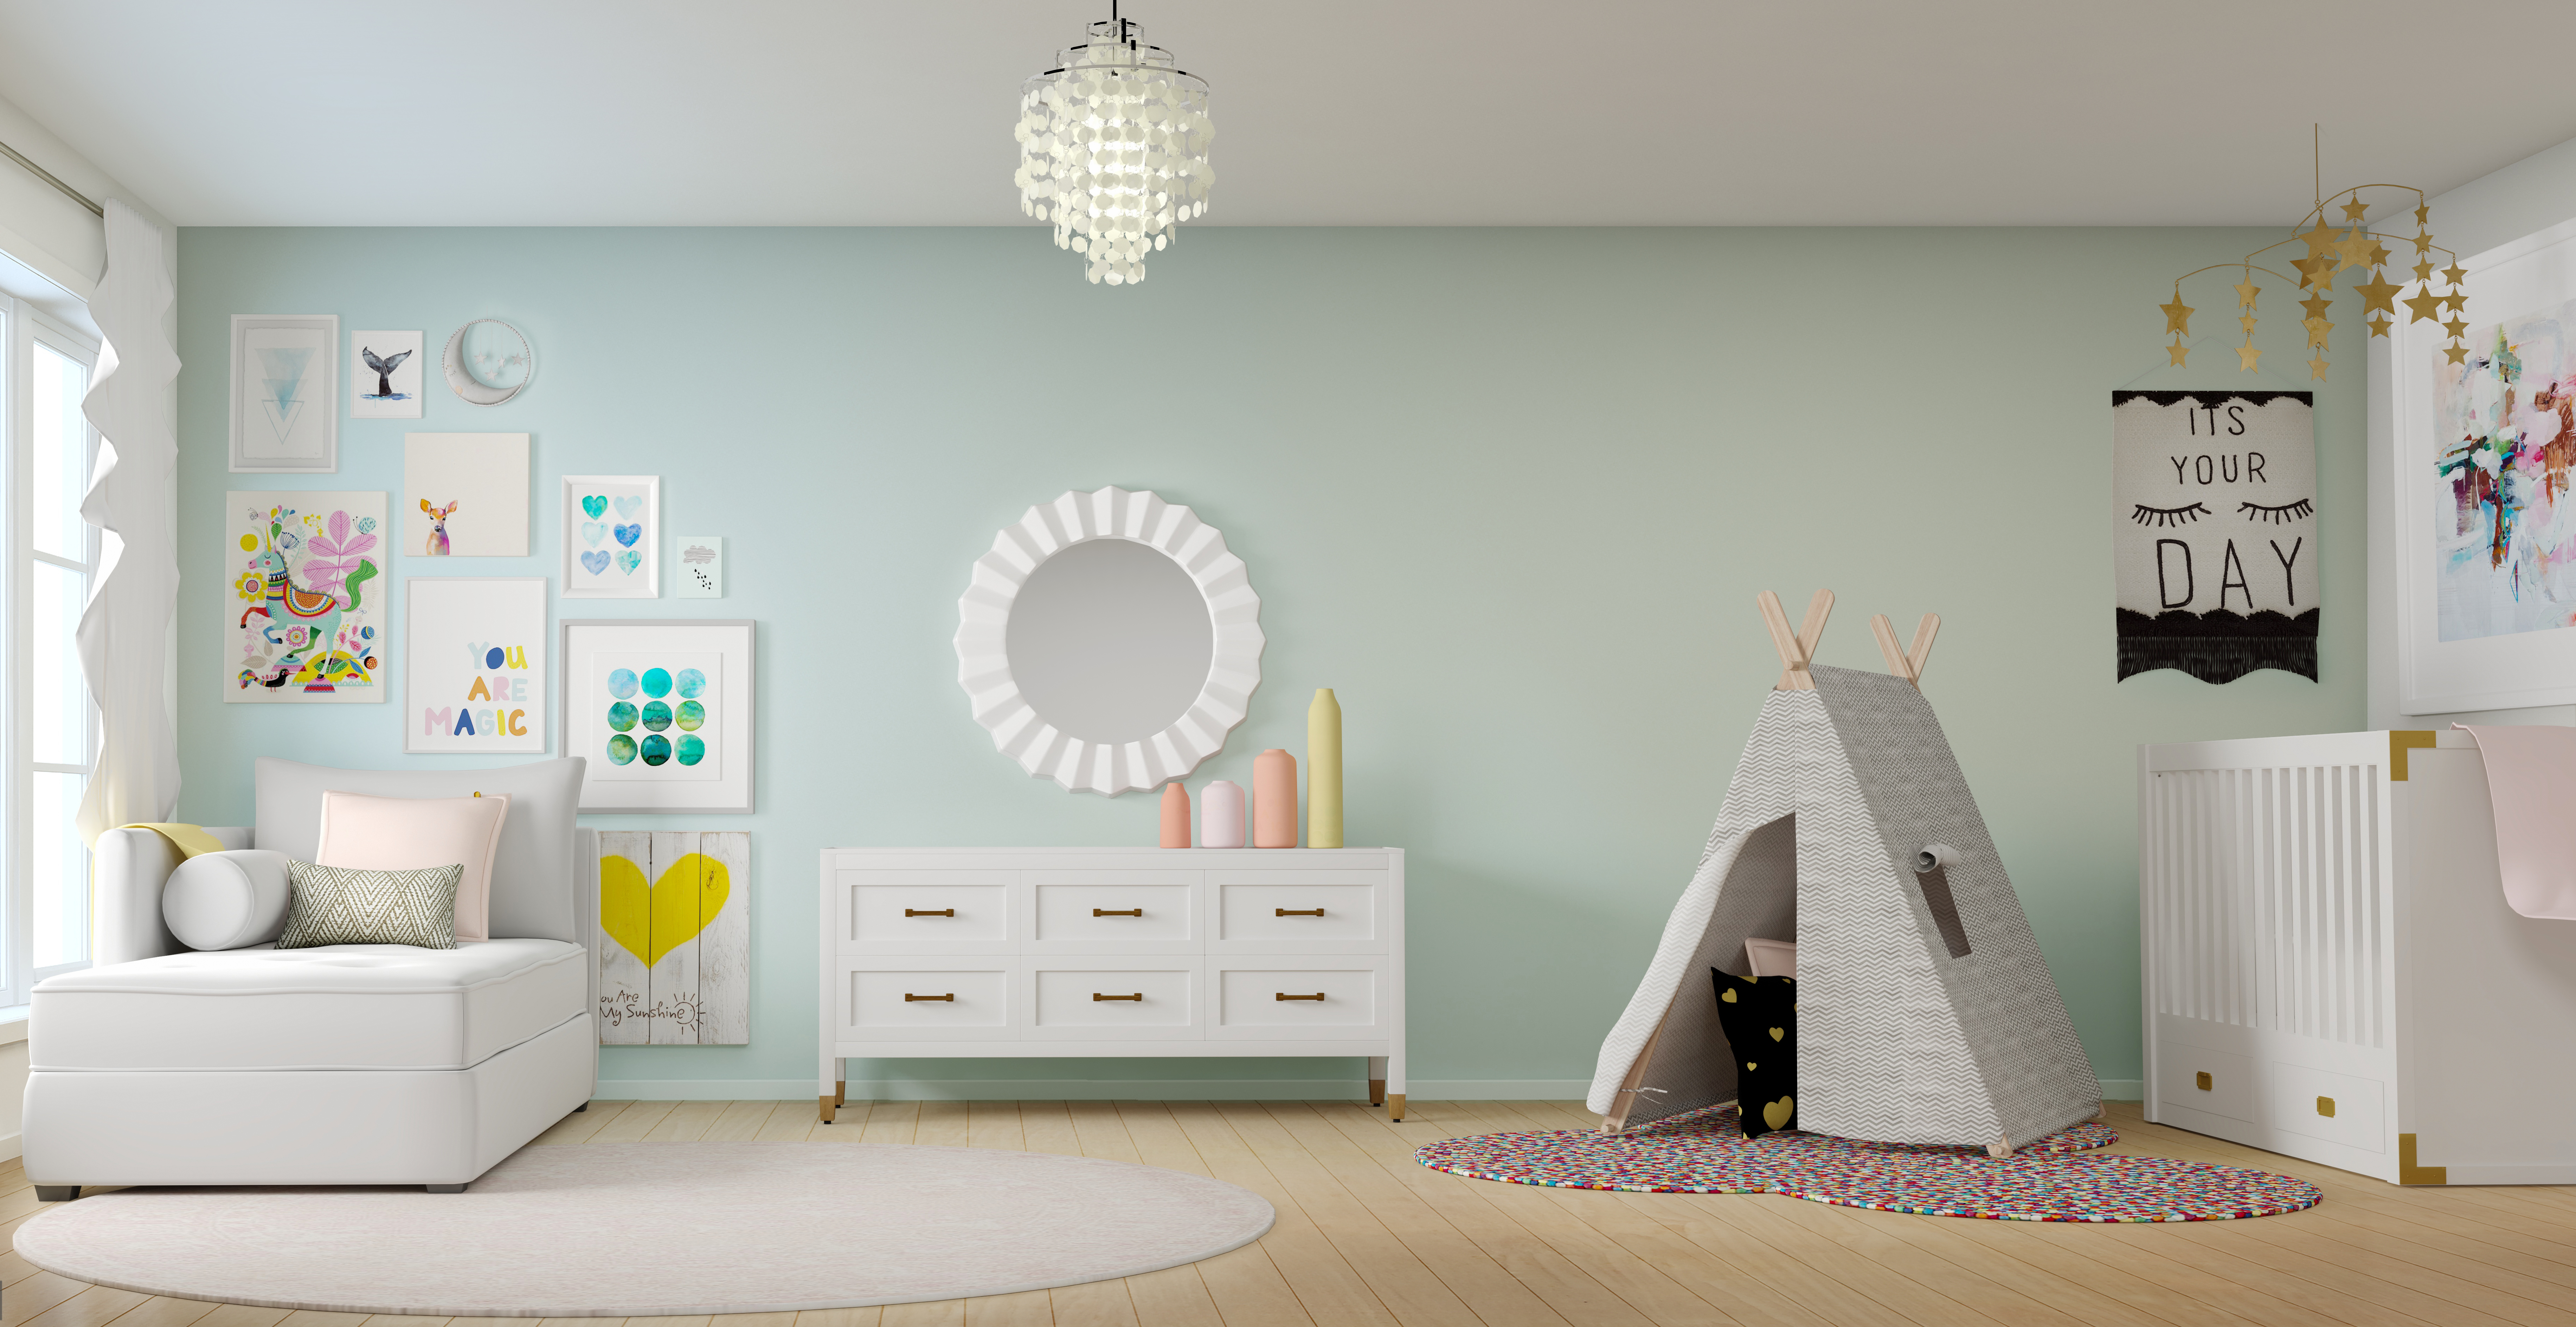 Girls Room_Render (1).jpg